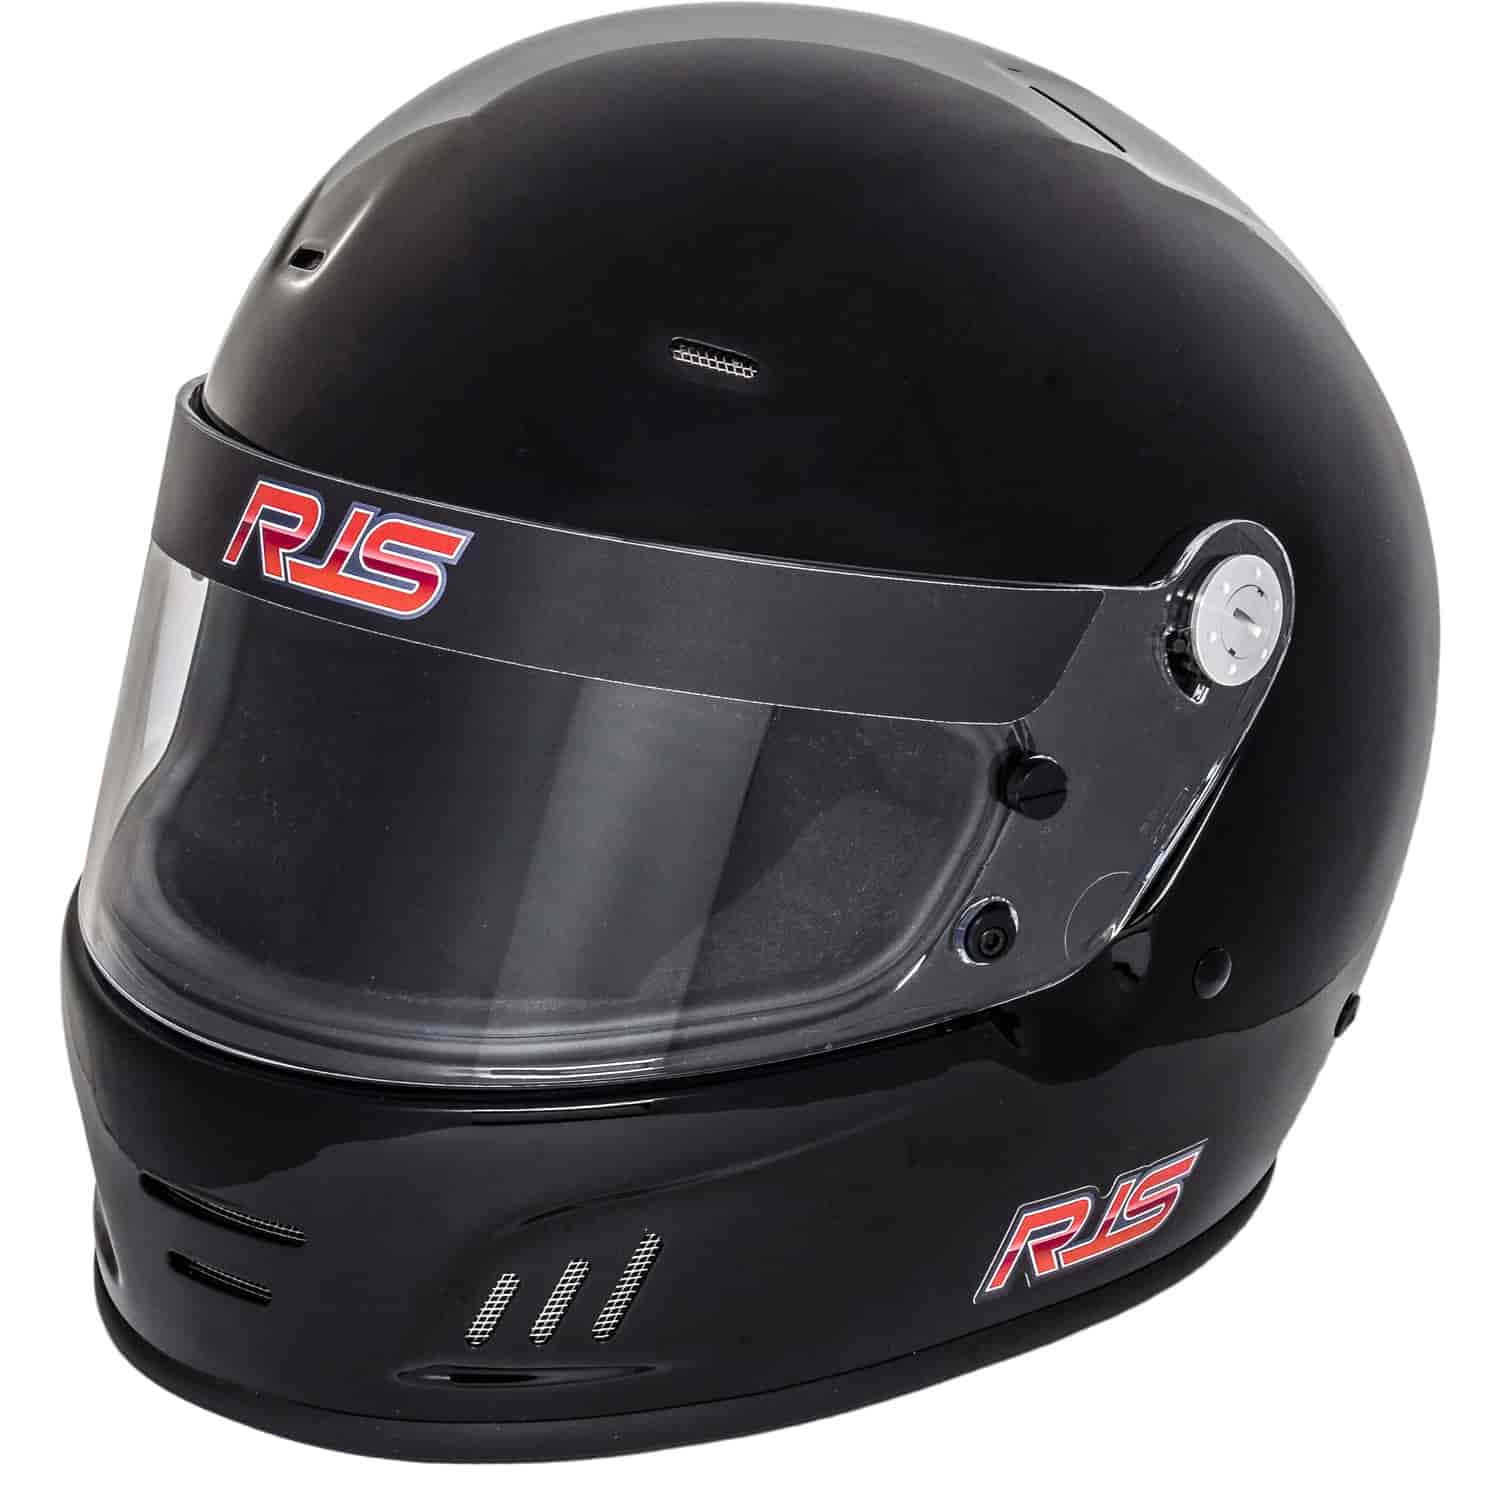 RJS Racing Equipment PROLGGB